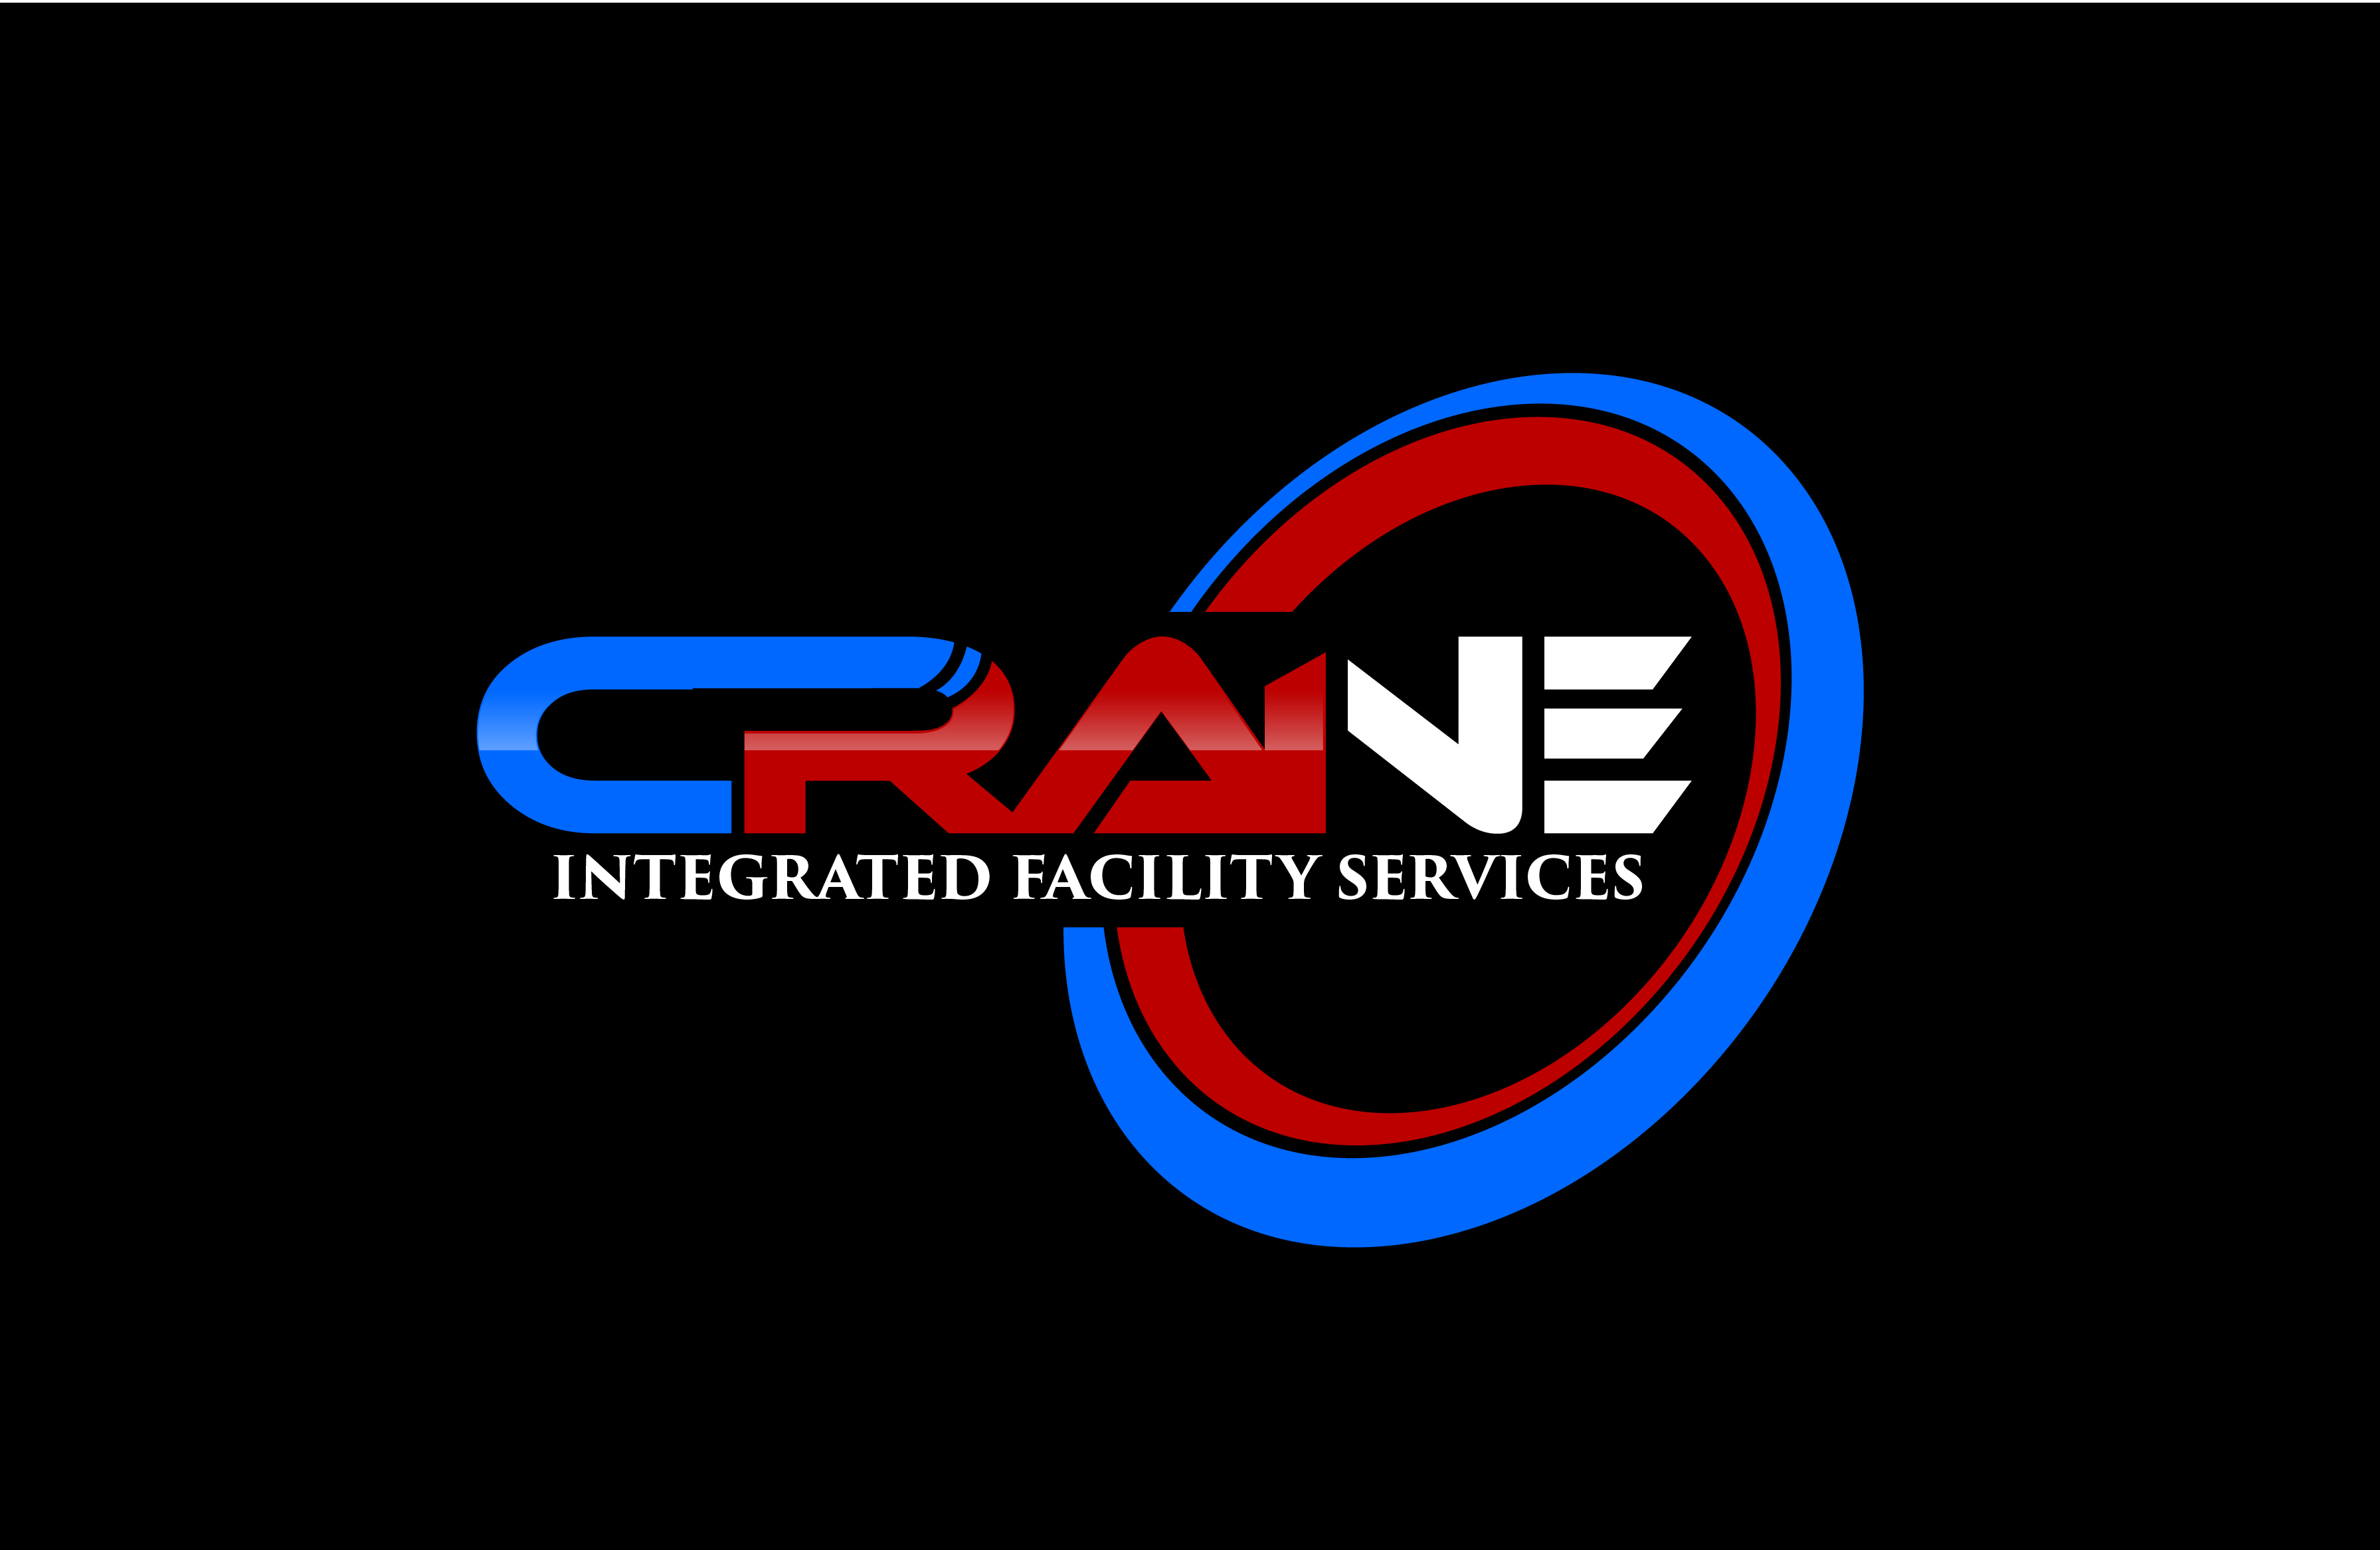 Logo Design by Cyril bail Geronimo - Entry No. 56 in the Logo Design Contest Inspiring Logo Design for Crane Integrated Facility Services.